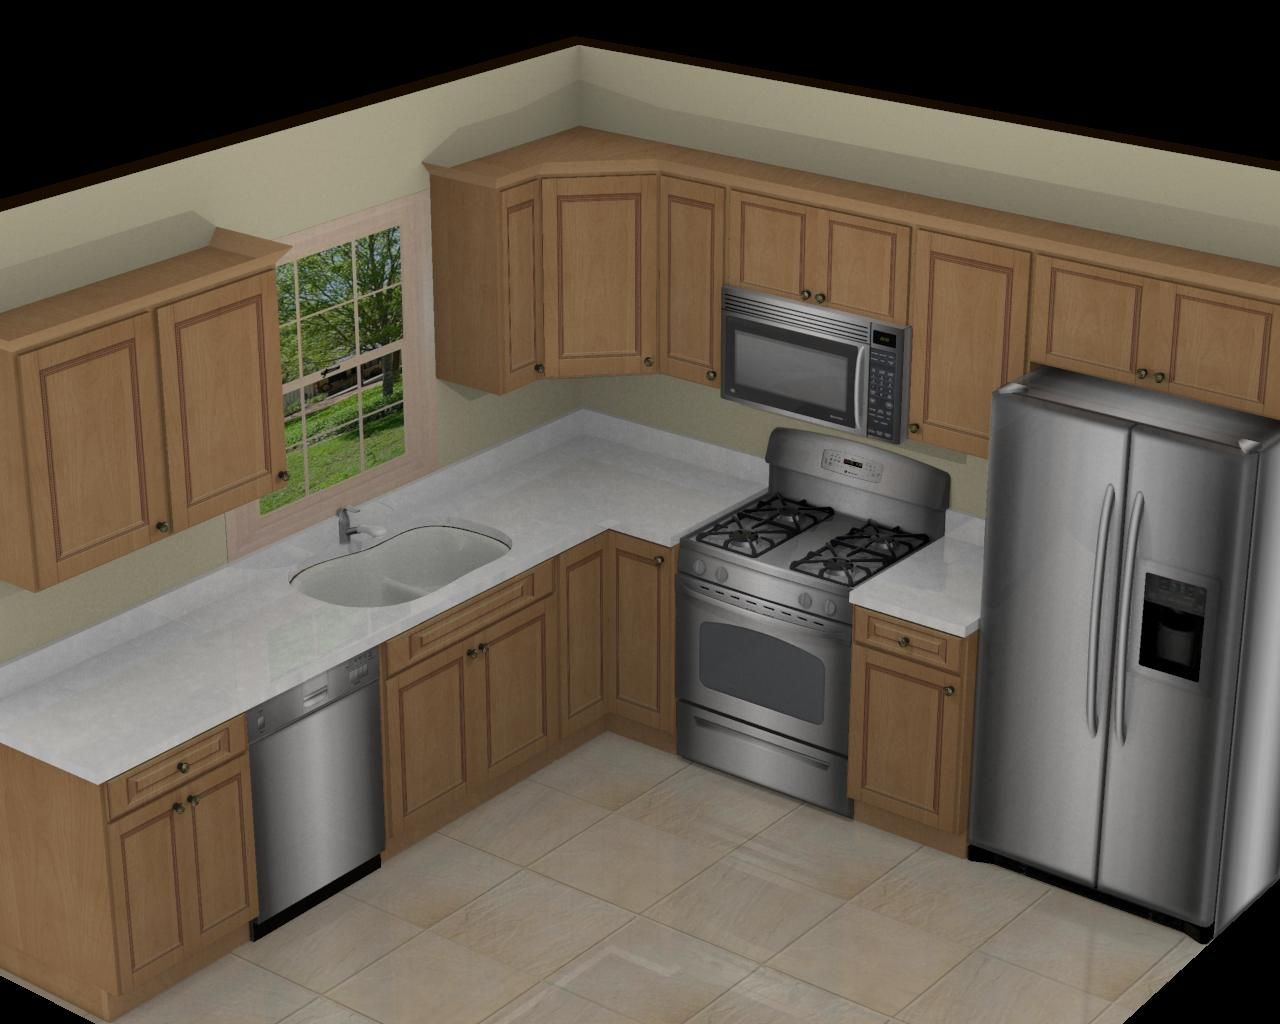 10x10 kitchen on pinterest l shaped kitchen kitchen for Small kitchen models